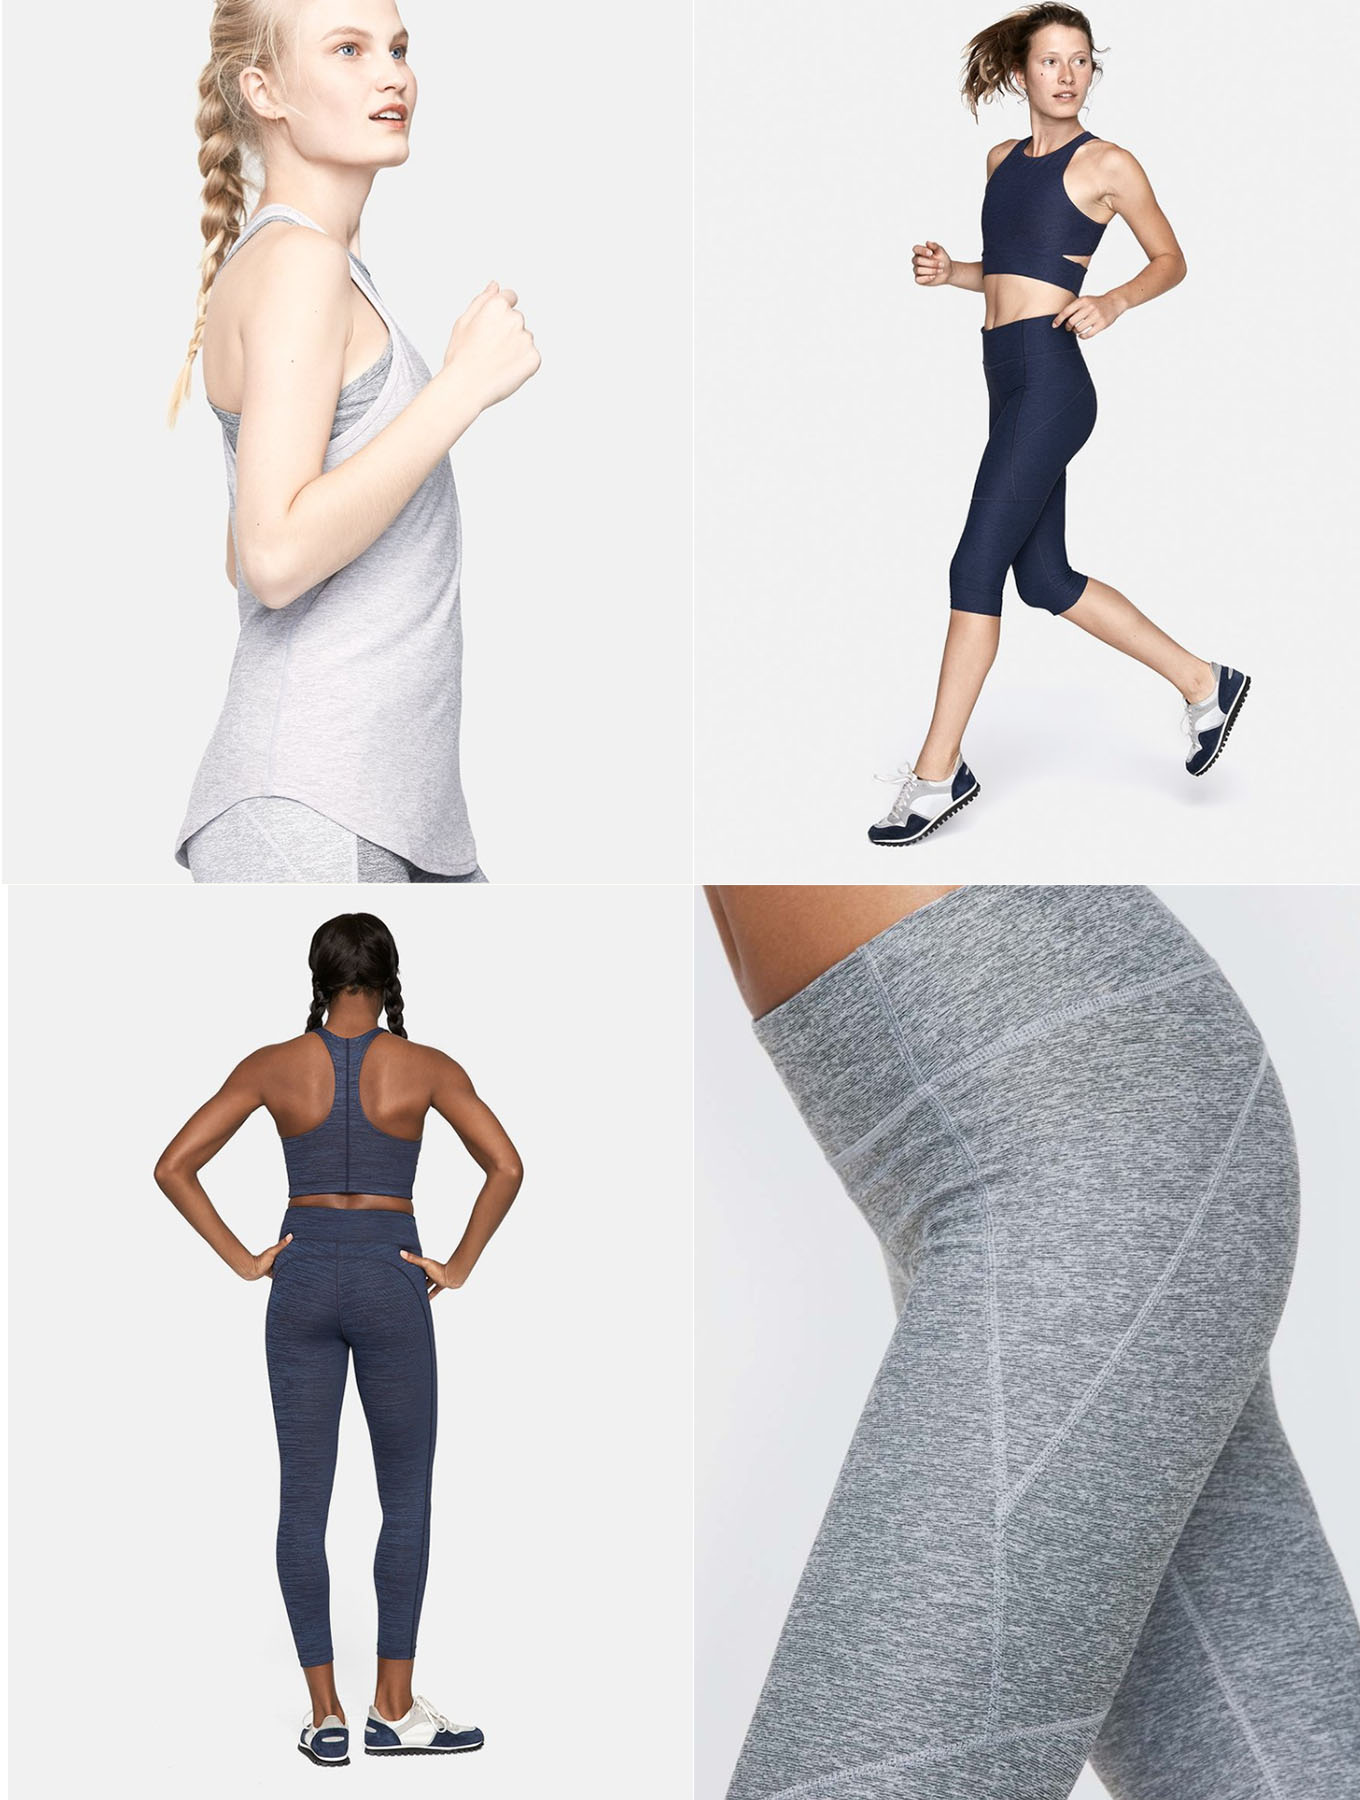 It is time to get my sweat on! Ridgely Brode is looking for feel good and good looking workout gear to get her motivated to work out on Ridgely's Radar.